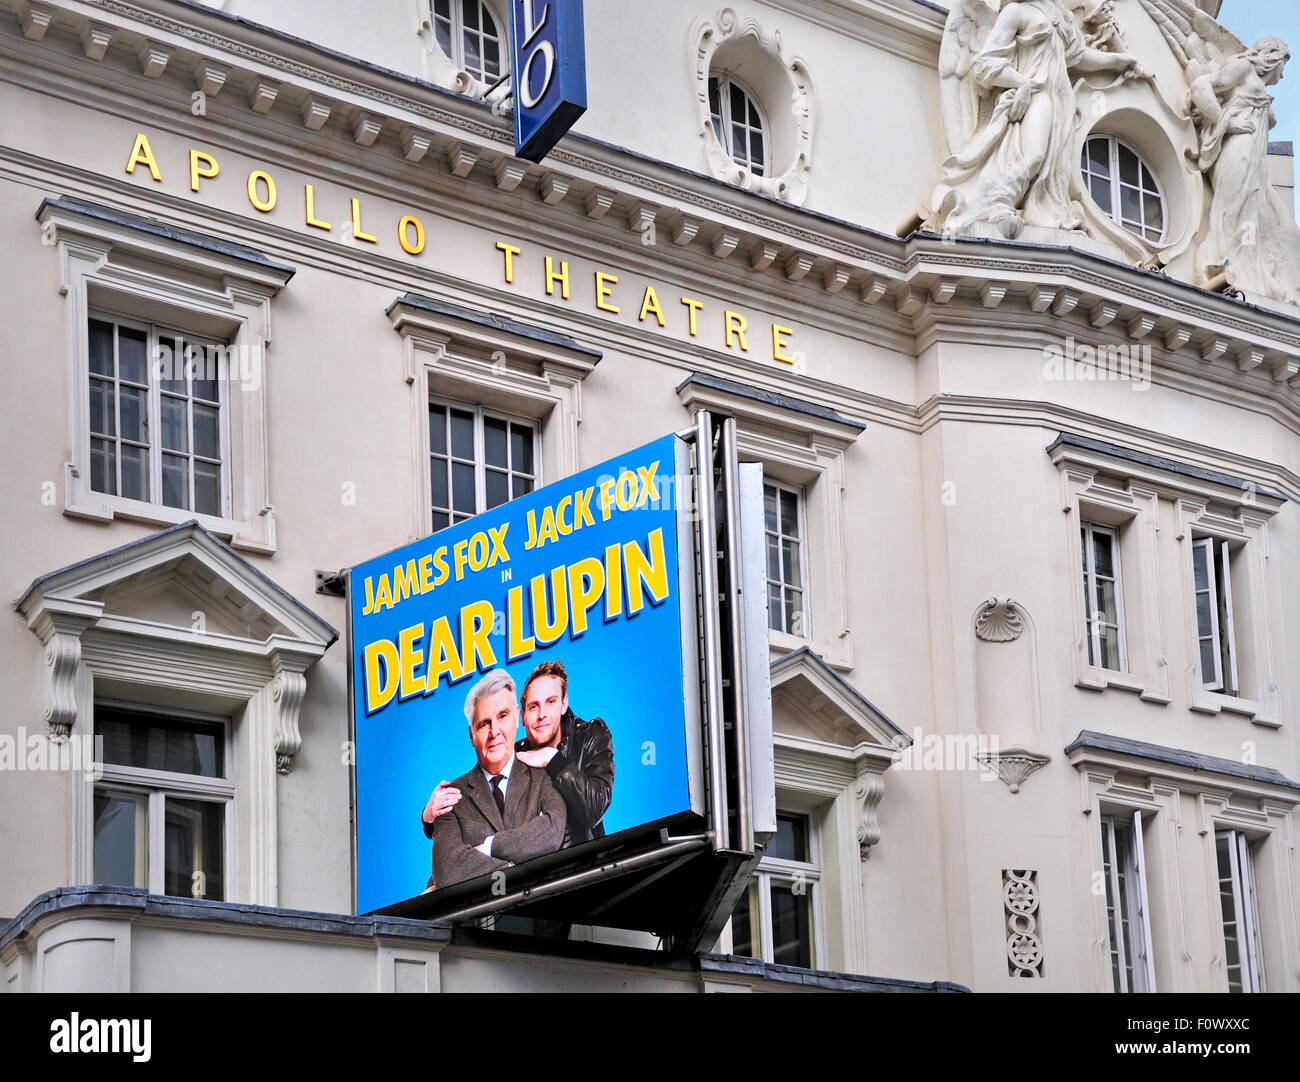 London, England, UK. Dear Lupin at the Apoolo Theatre, Shaftesbury Avenue, staring James and Jack Fox (August 2015) - Stock Image